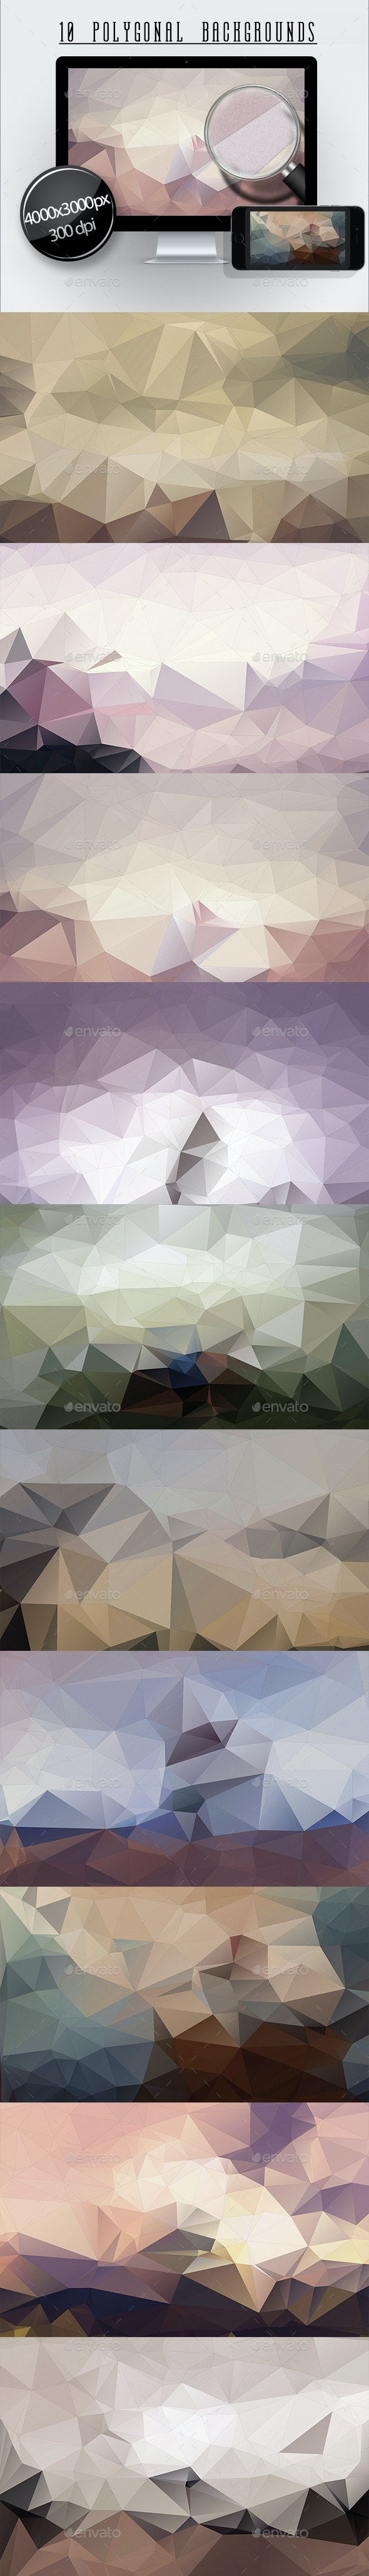 10 Polygonal Backgrounds - Abstract Backgrounds